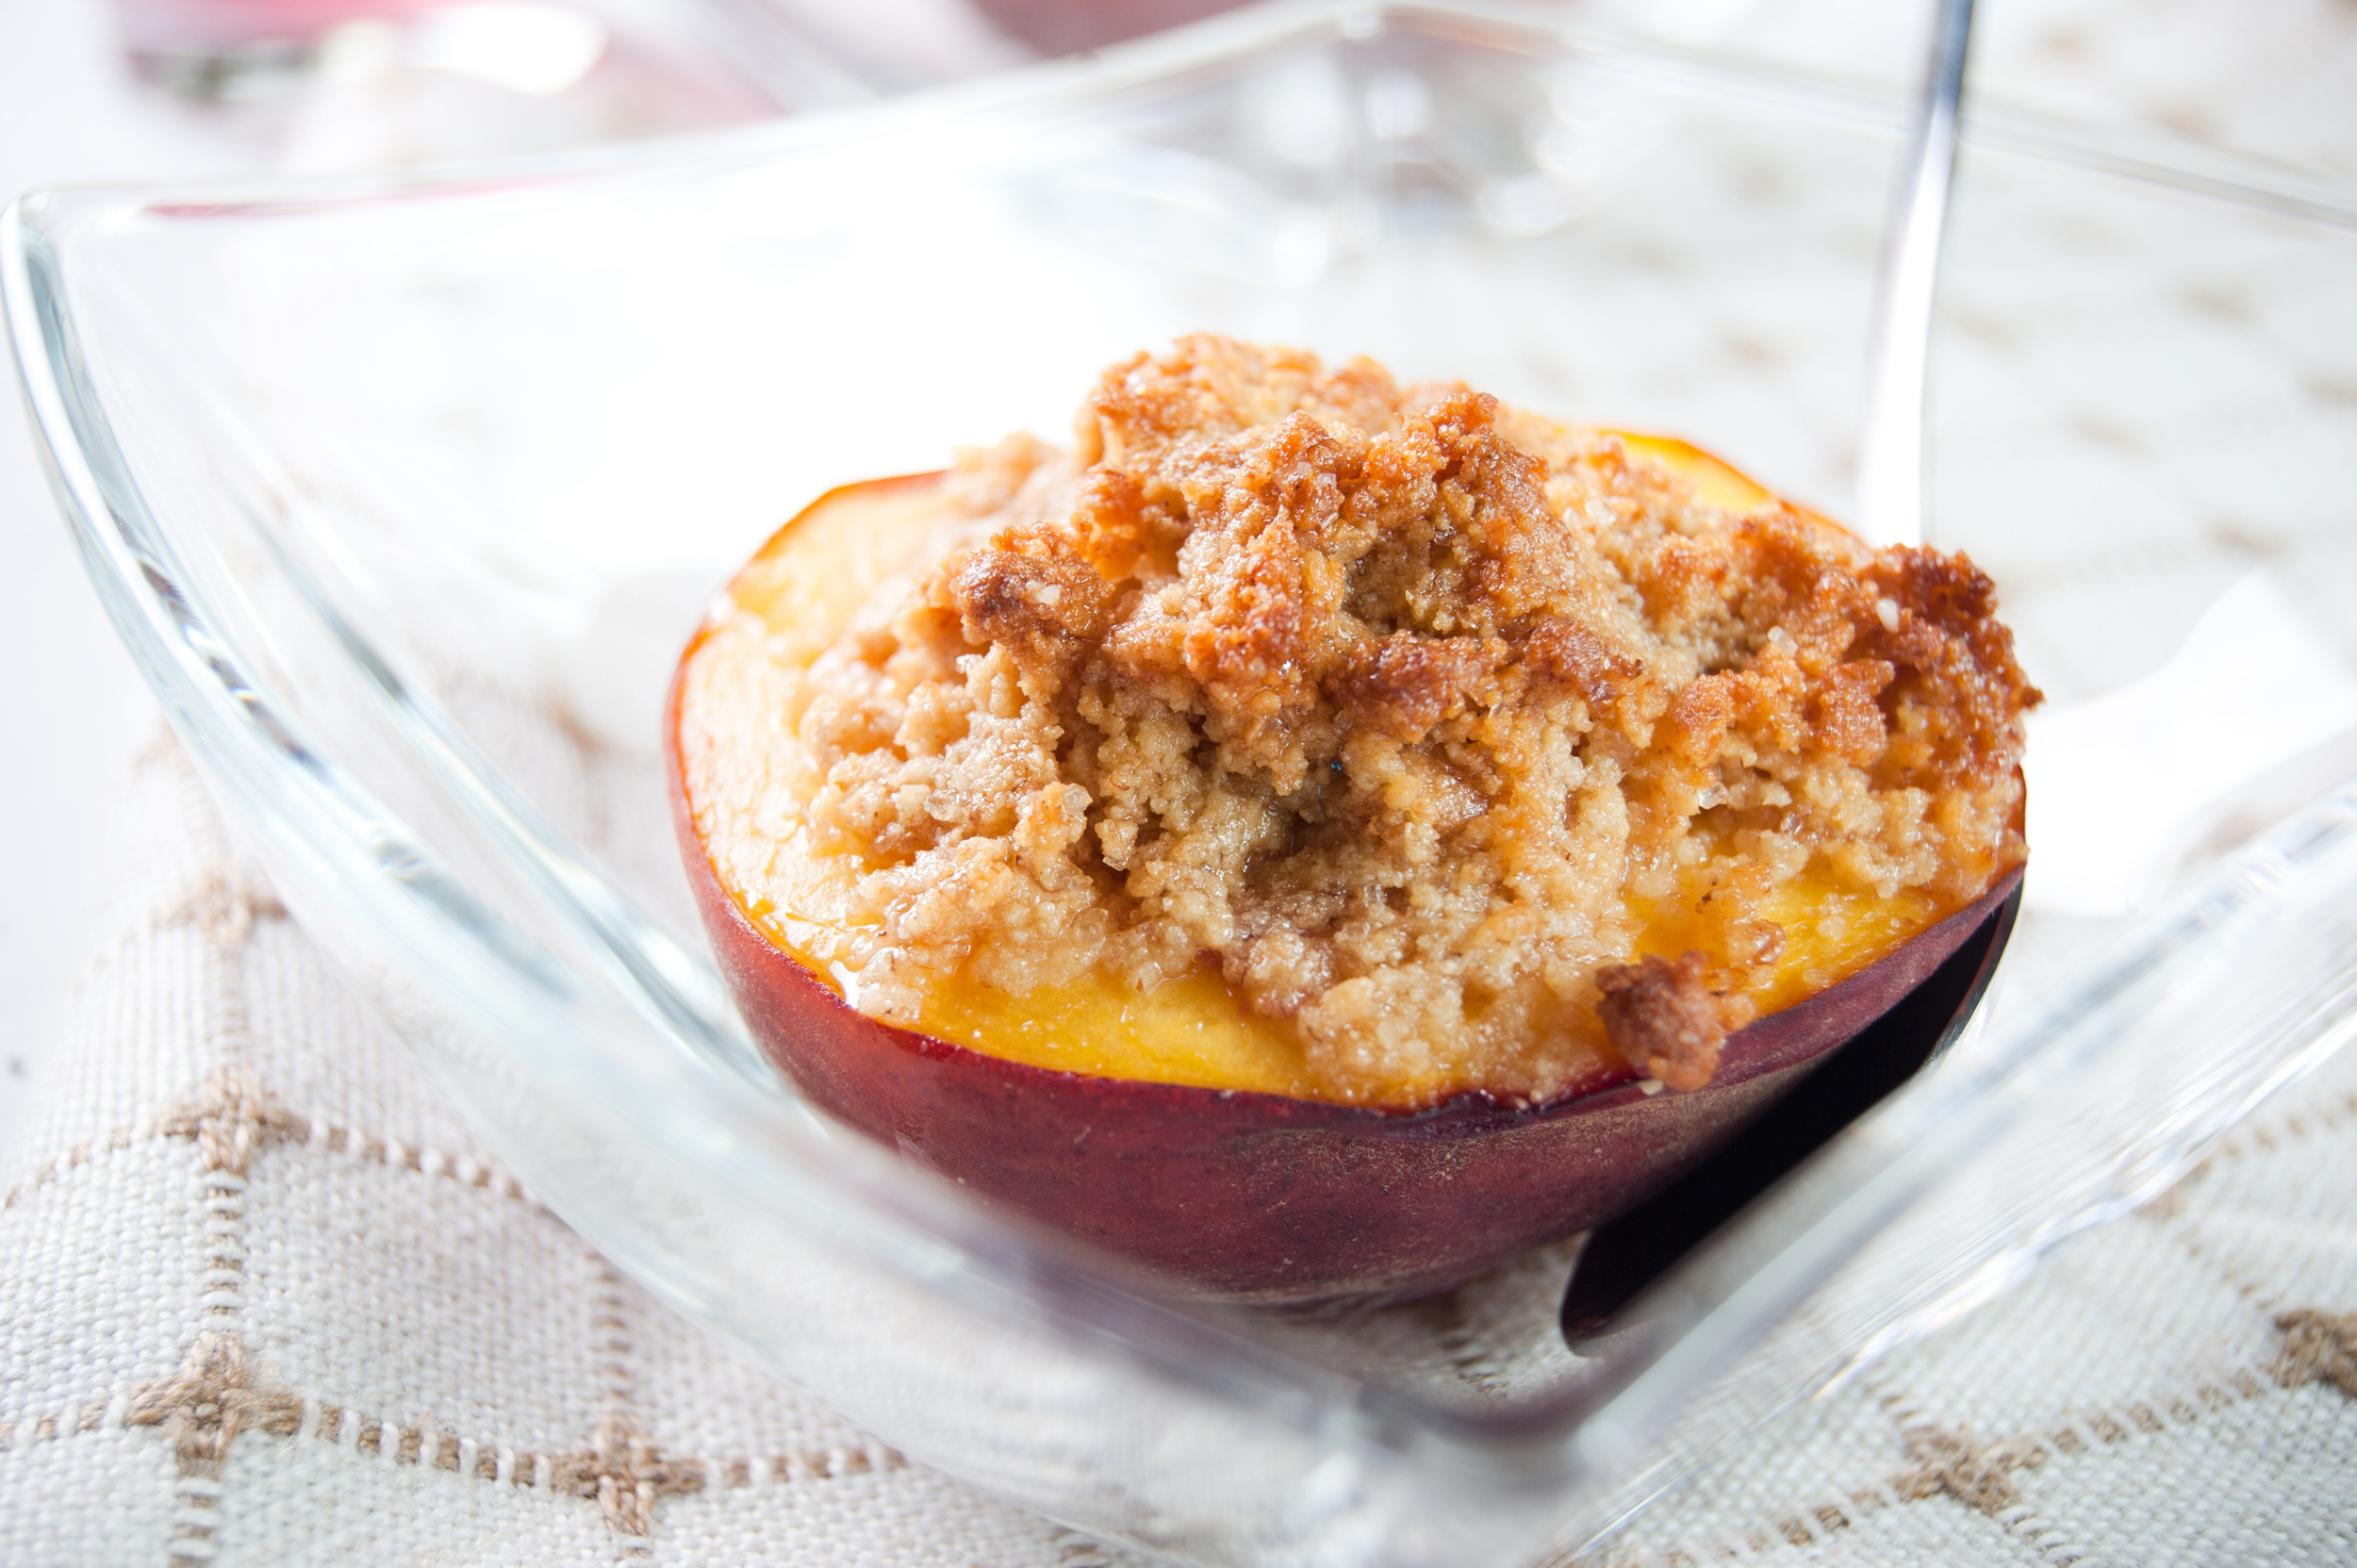 Baked Peach with Cookie Crumble